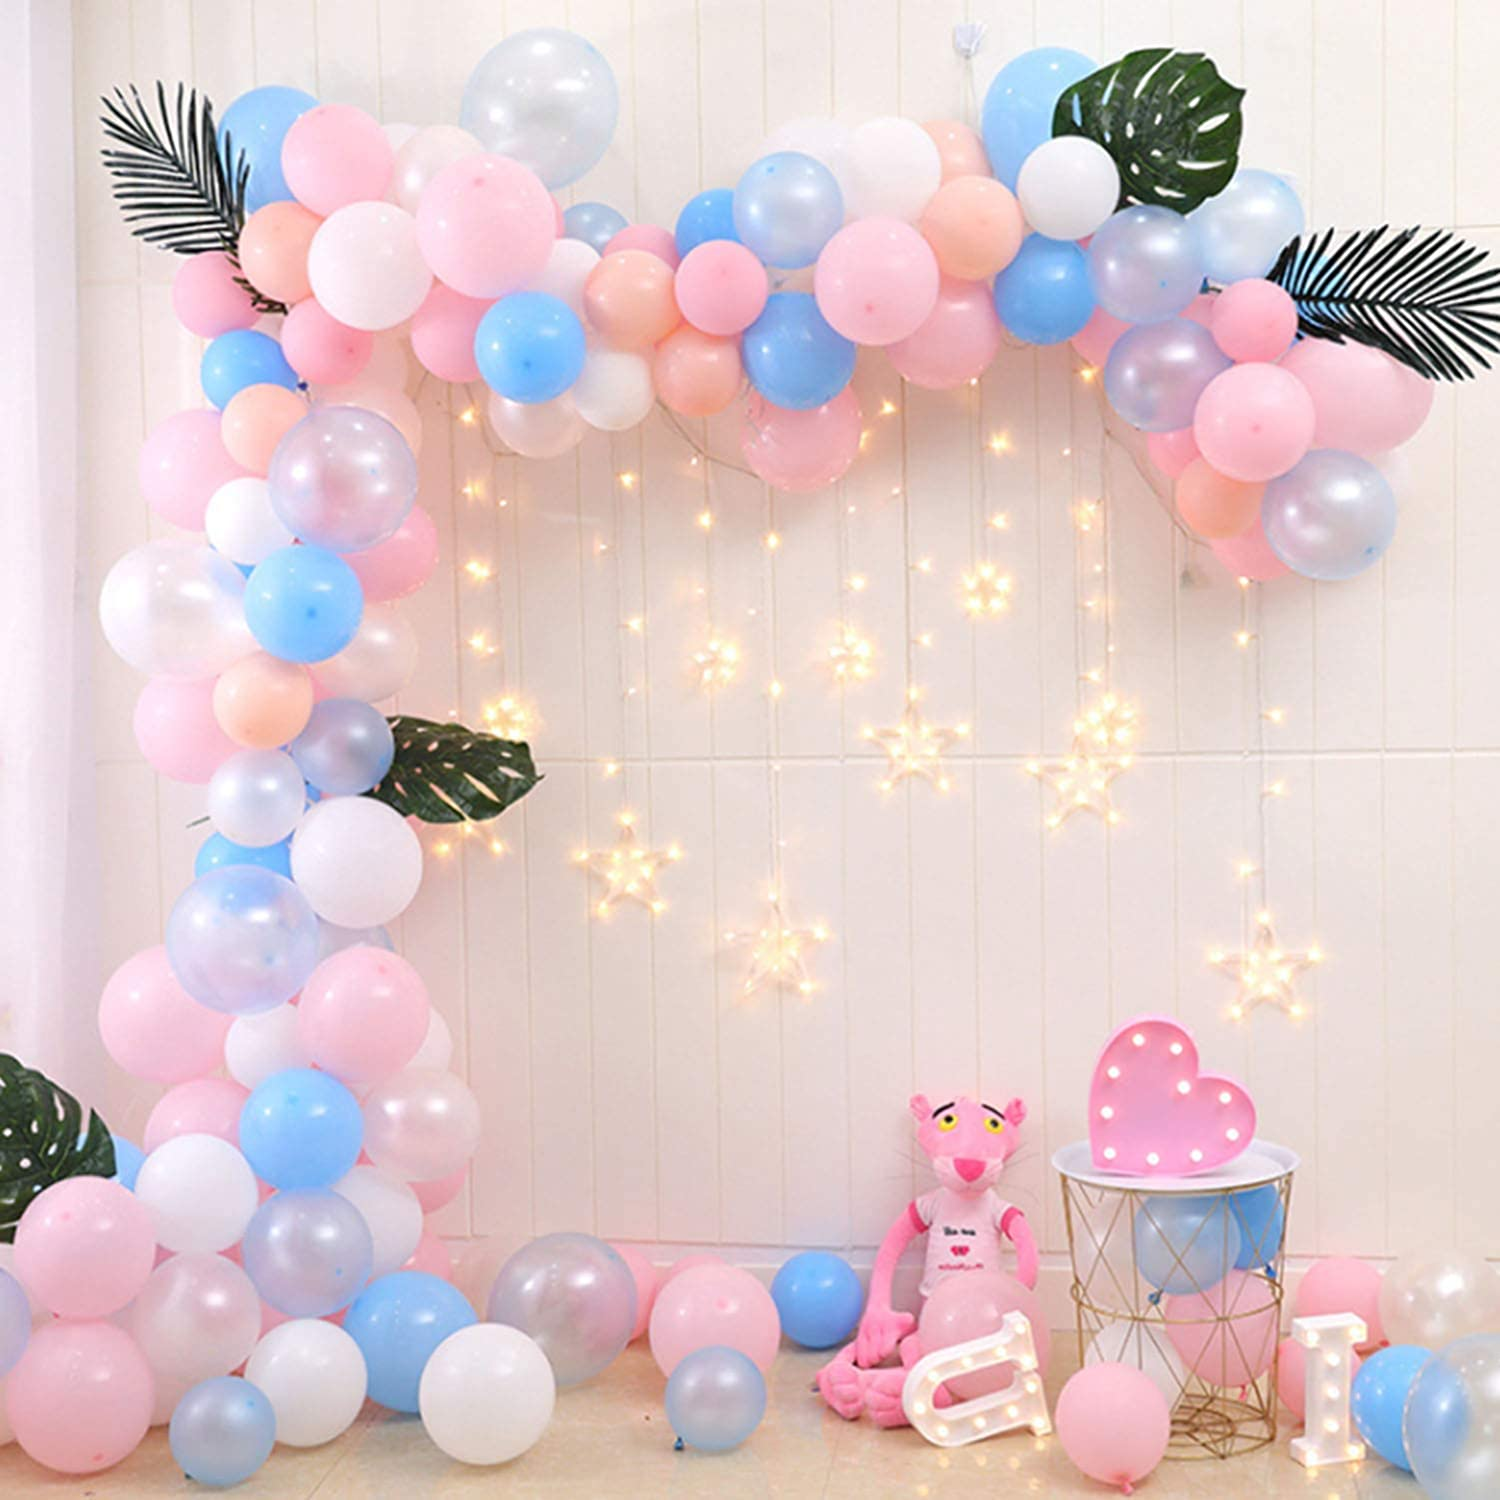 Amazon Com Kwayi Balloon Garland Arch Blue And Pink Themed 16ft Long 110pcs Assorted Balloons For Baby Shower Gender Reveal Party Centerpiece Backdrop Background Decoration Toys Games